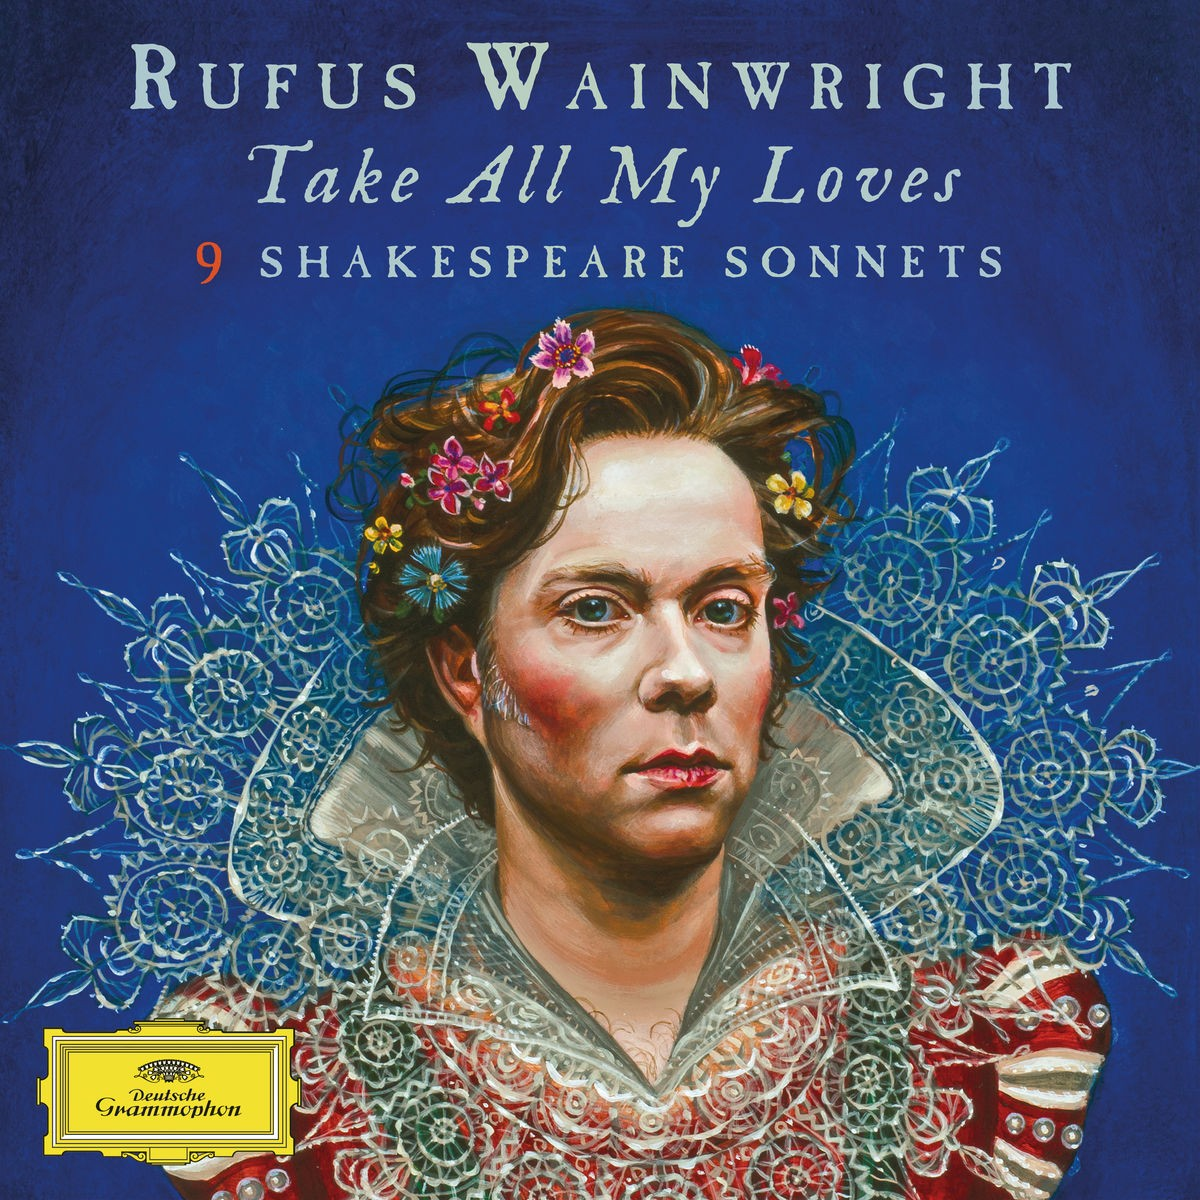 Rufus Wainwright - Take All My Loves - 9 Shakespeare Sonnets CD - 00289 4795508